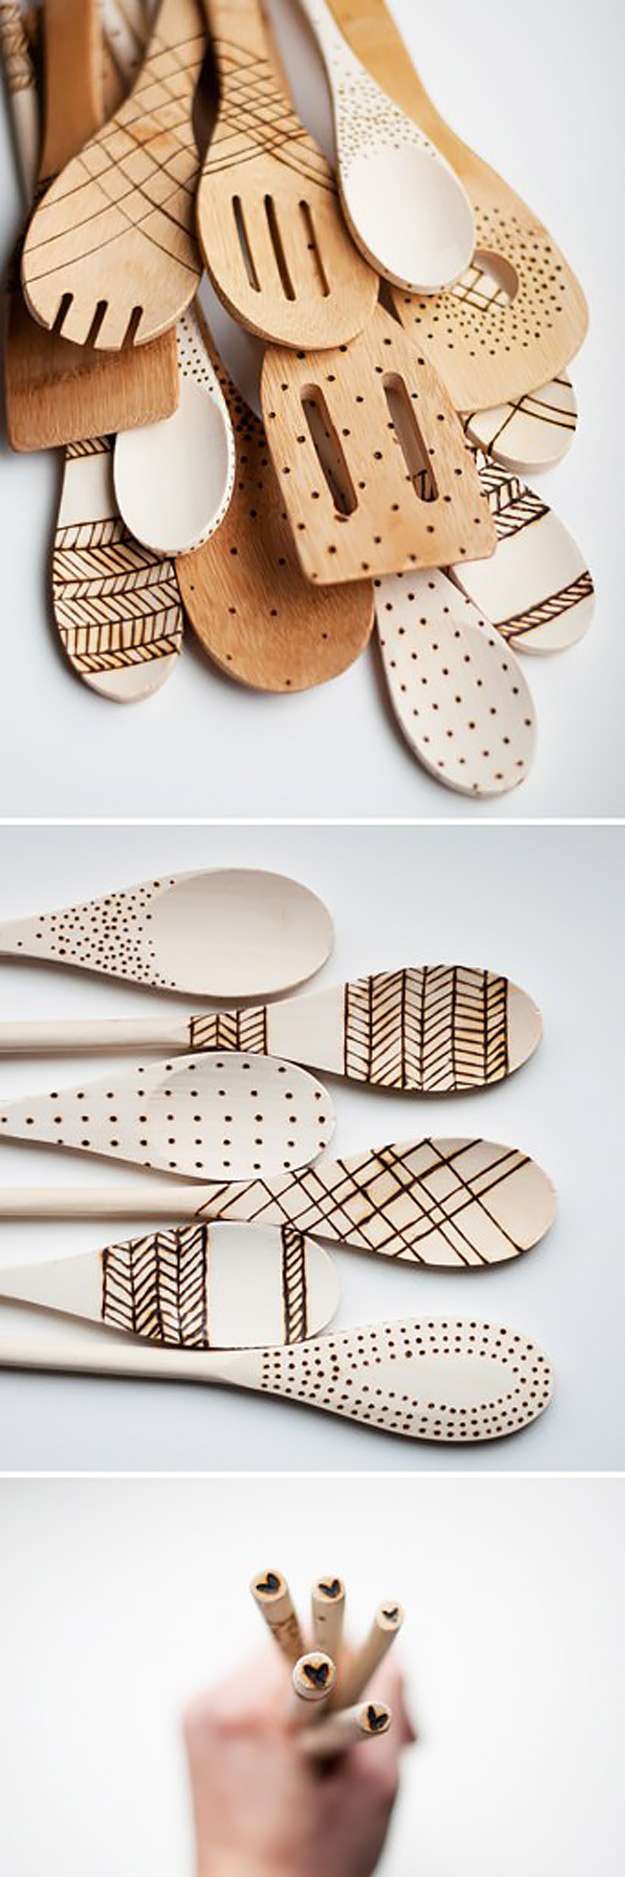 Expensive Looking DIY Wedding Gift Ideas - DIY Etched Wooden Spoons - Easy and Unique Homemade Gift Ideas for Bride and Groom - Cheap Presents You Can Make for the Couple- for the Home, From The Kids, Personalized Ideas for Parents and Bridesmaids #diywedding #weddinggifts #diygiftsLooking DIY Wedding Gift Ideas - DIY Etched Wooden Spoons - Easy and Unique Homemade Gift Ideas for Bride and Groom - Cheap Presents You Can Make for the Couple- for the Home, From The Kids, Personalized Ideas for Parents and Bridesmaids |